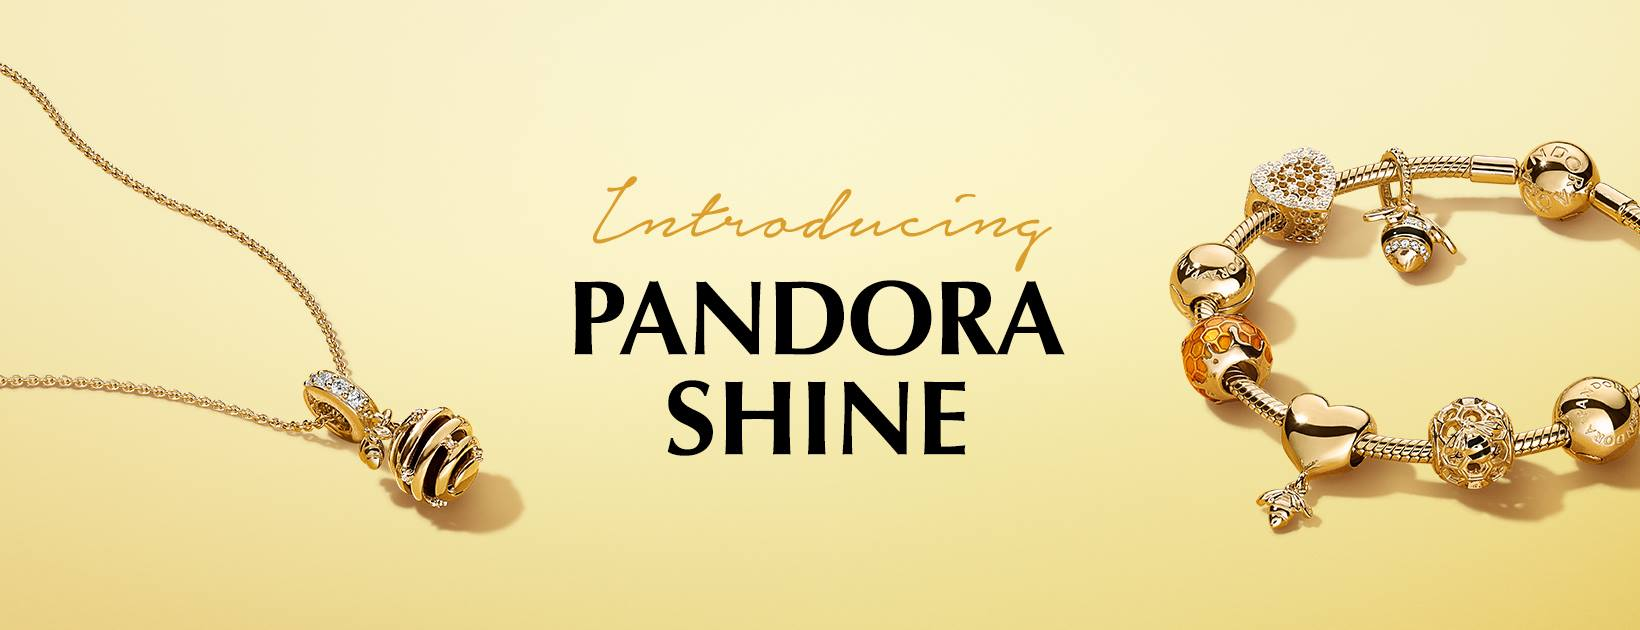 Pandora-Shine-Kollektion